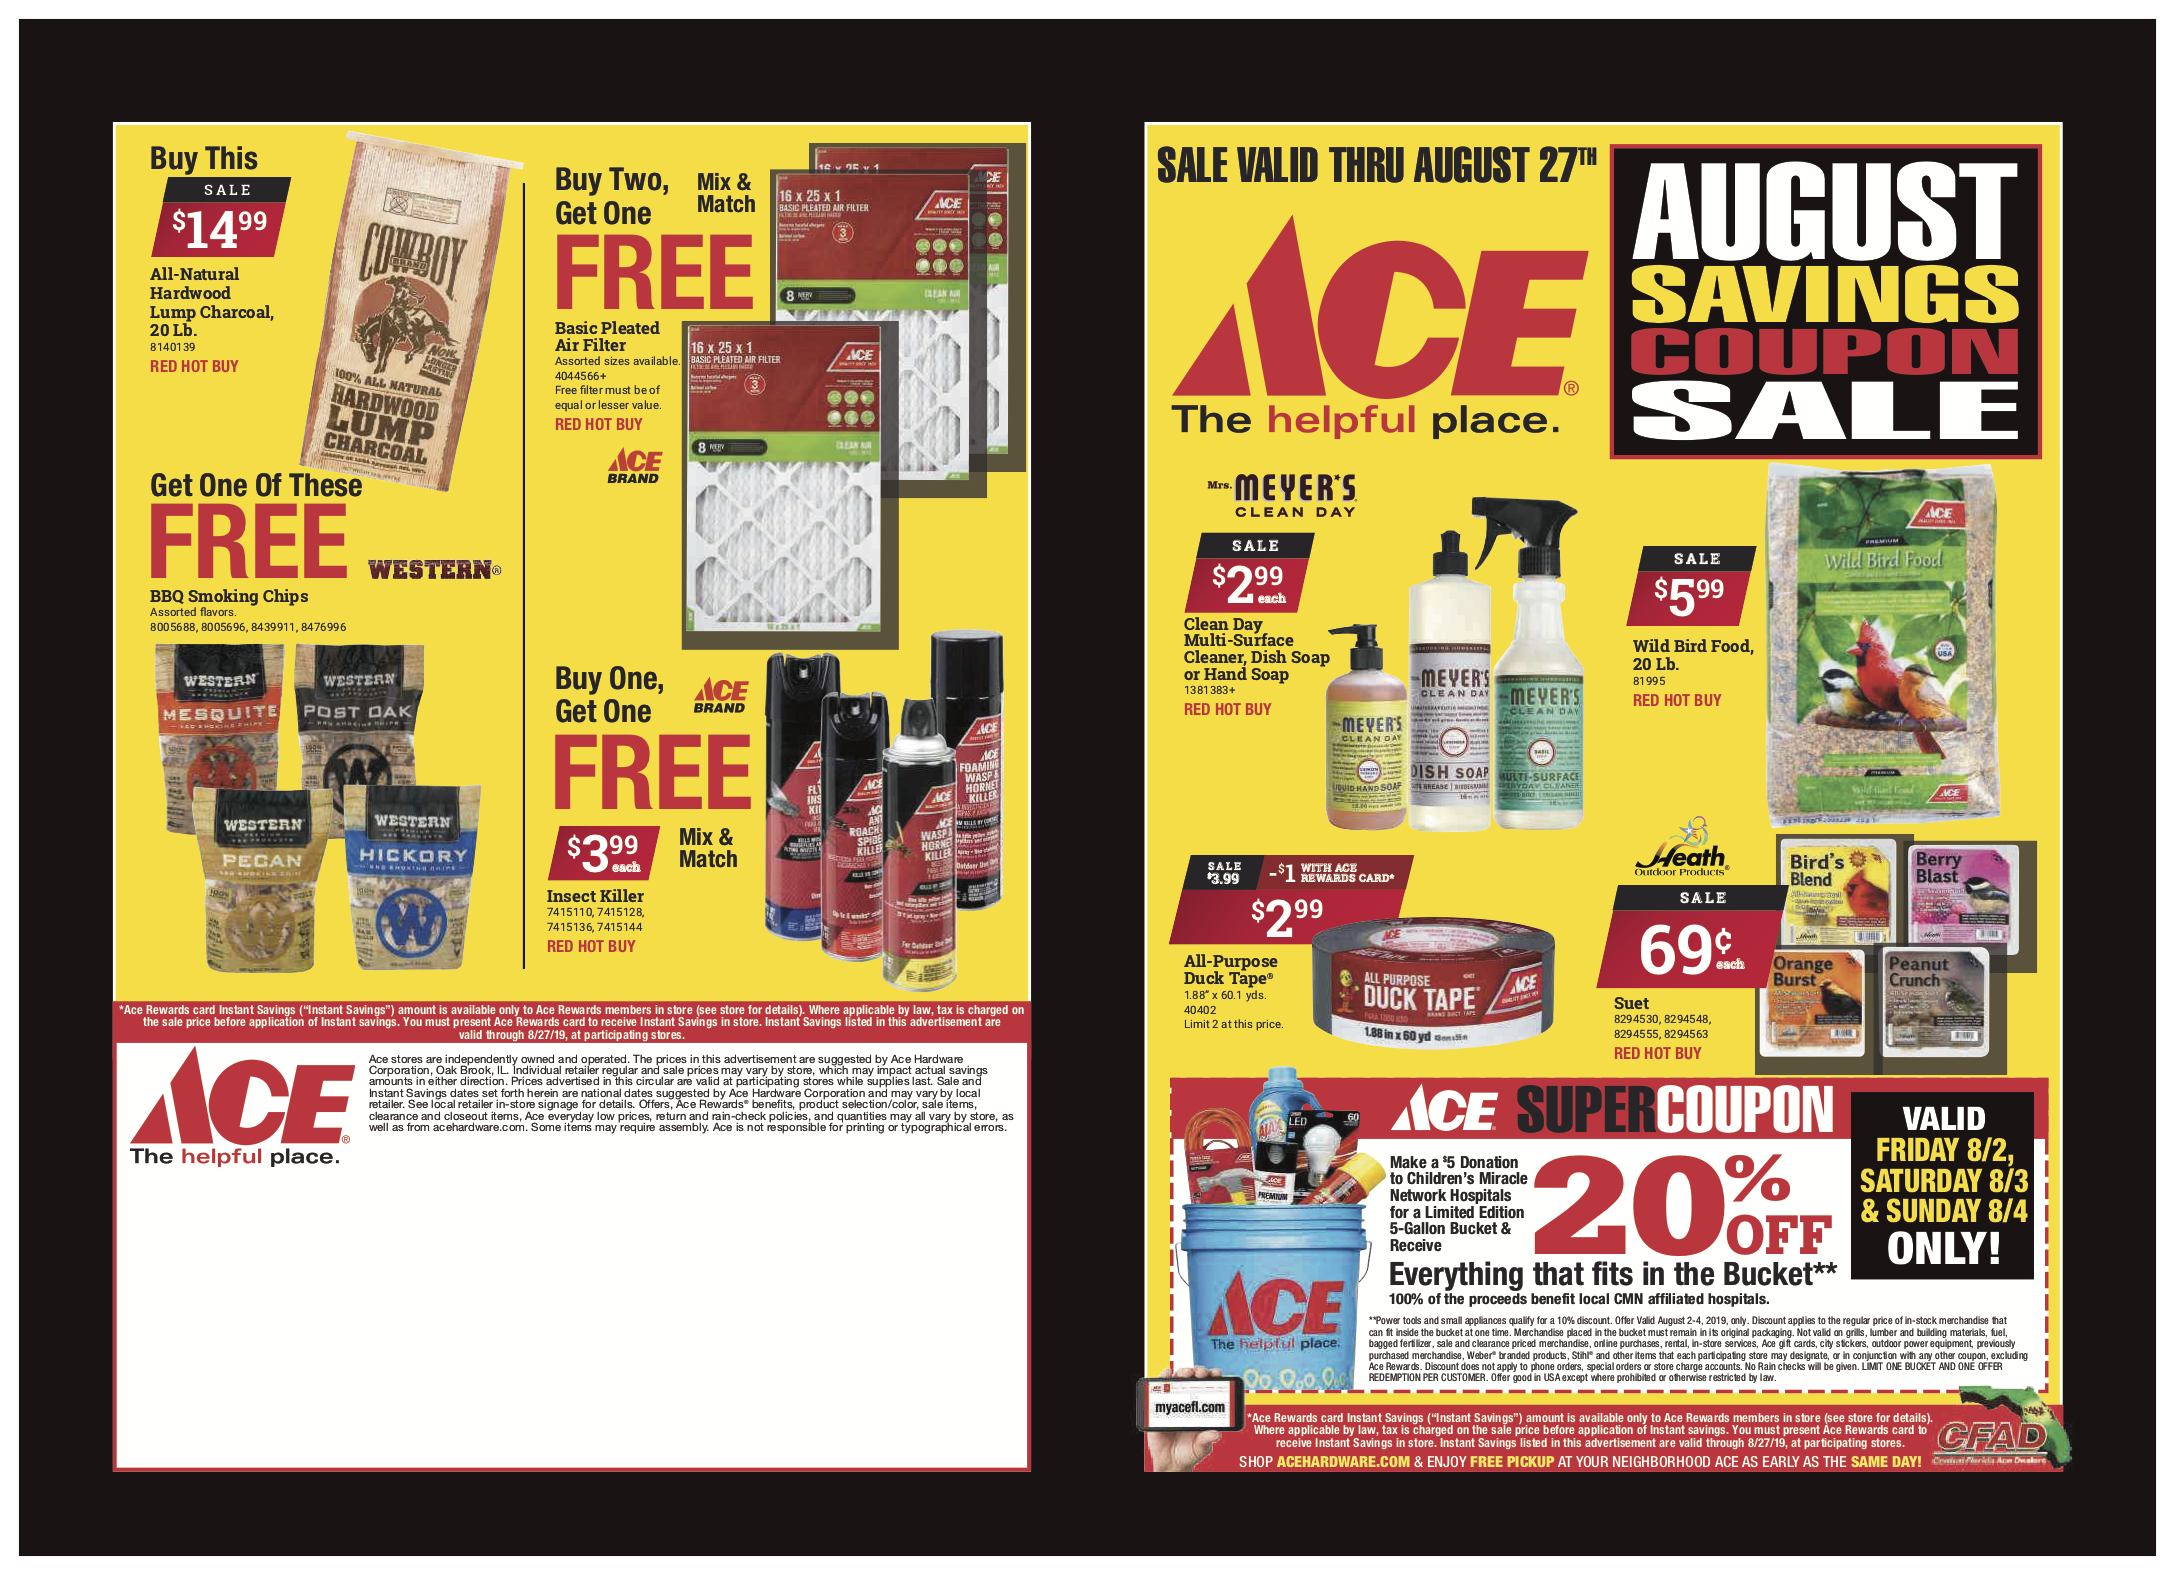 August Savings Coupons!